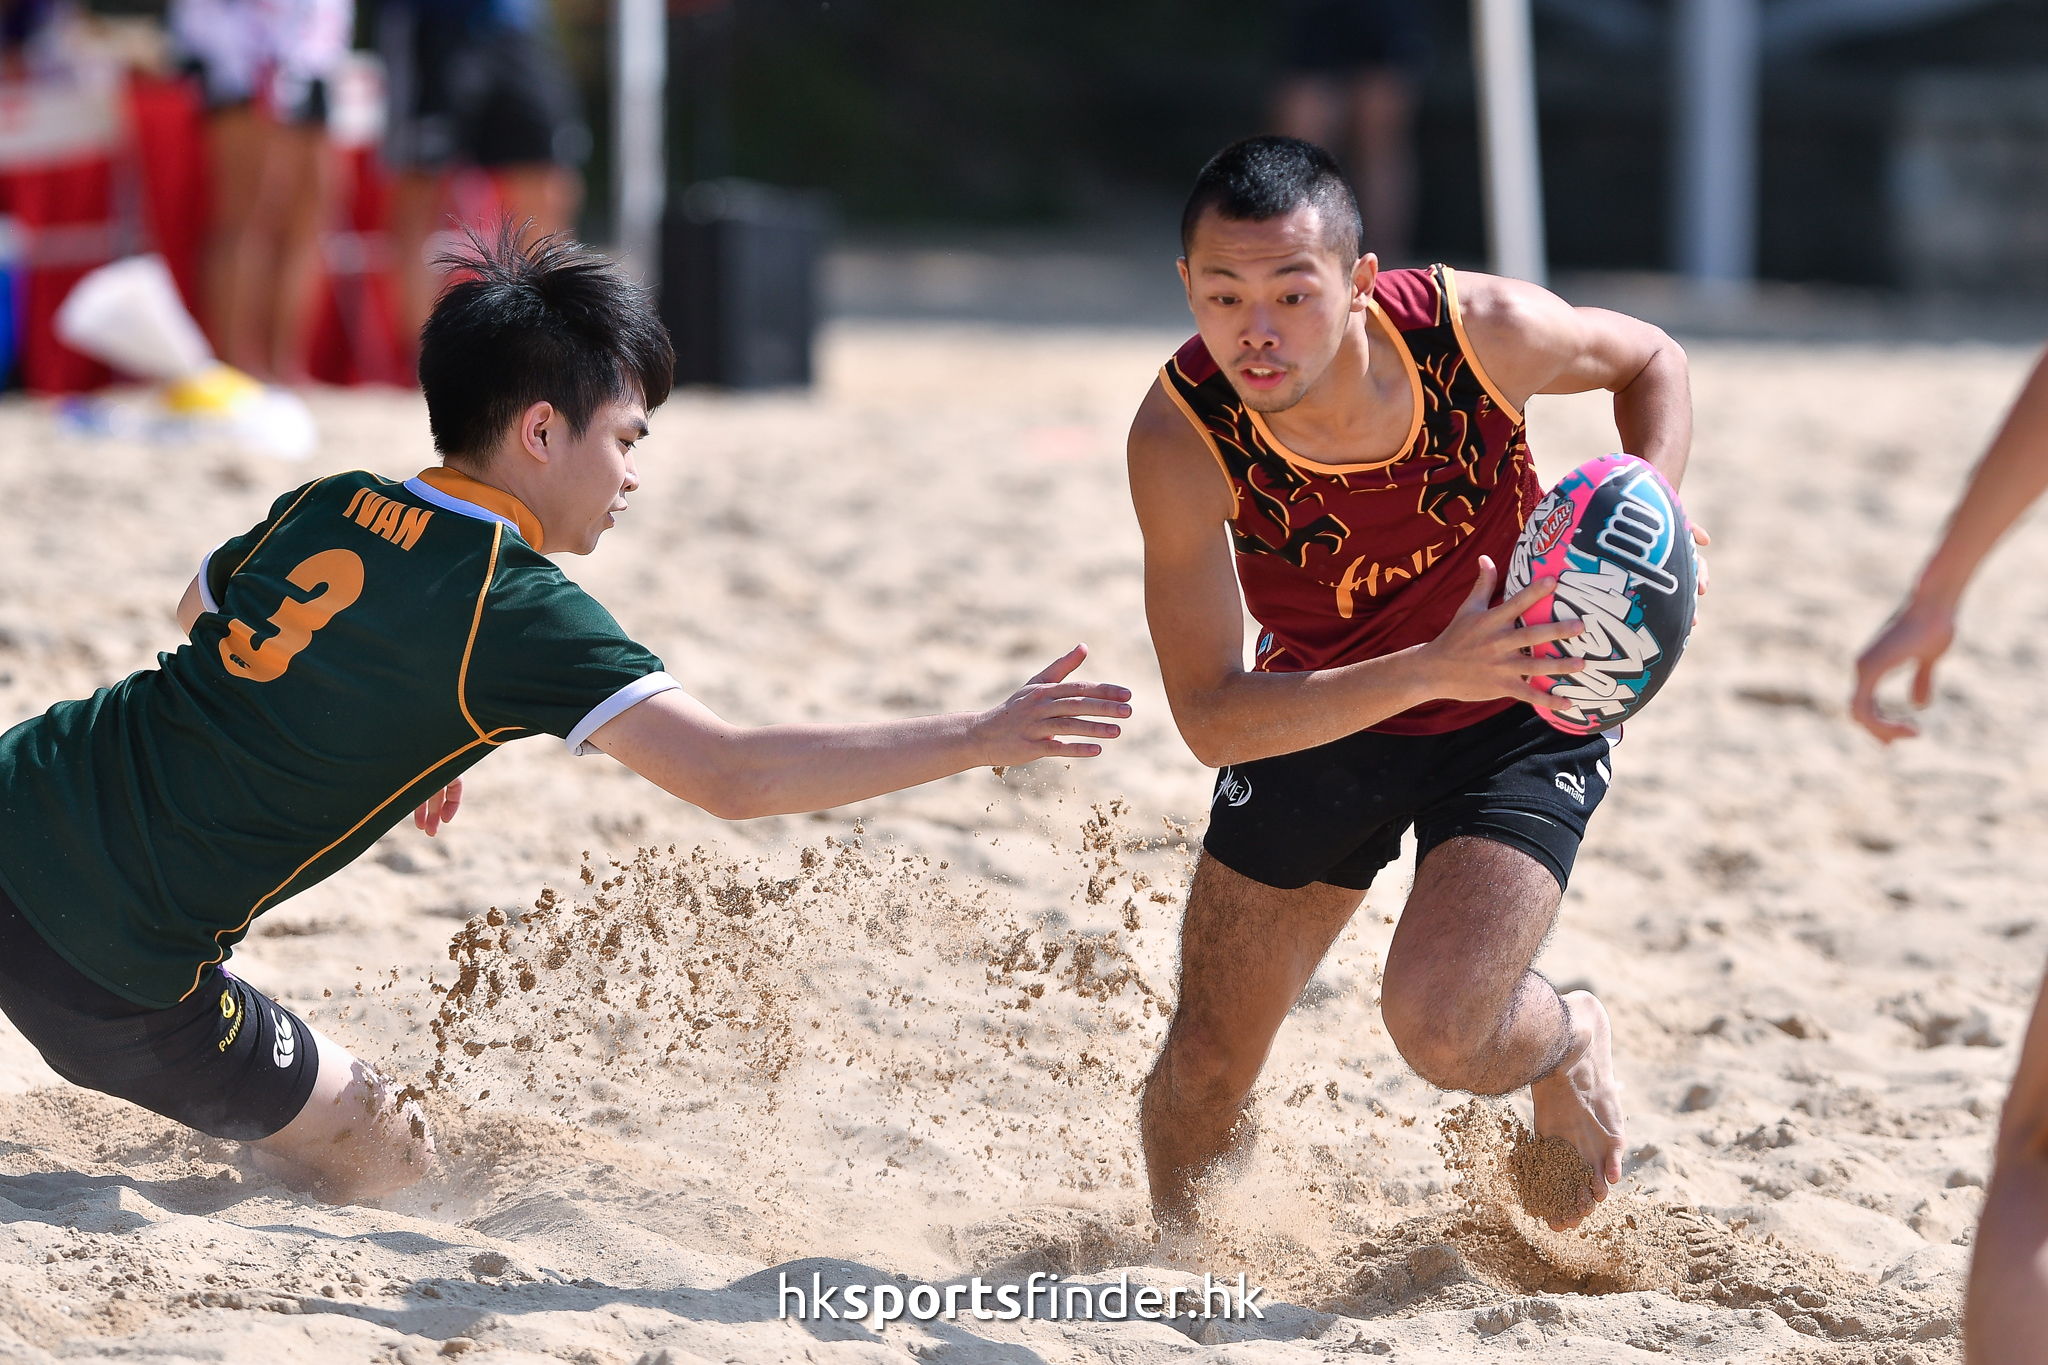 Her_GoldCoastTertiaryBeachRugby_16-11-12 11.17.47_000366.jpg